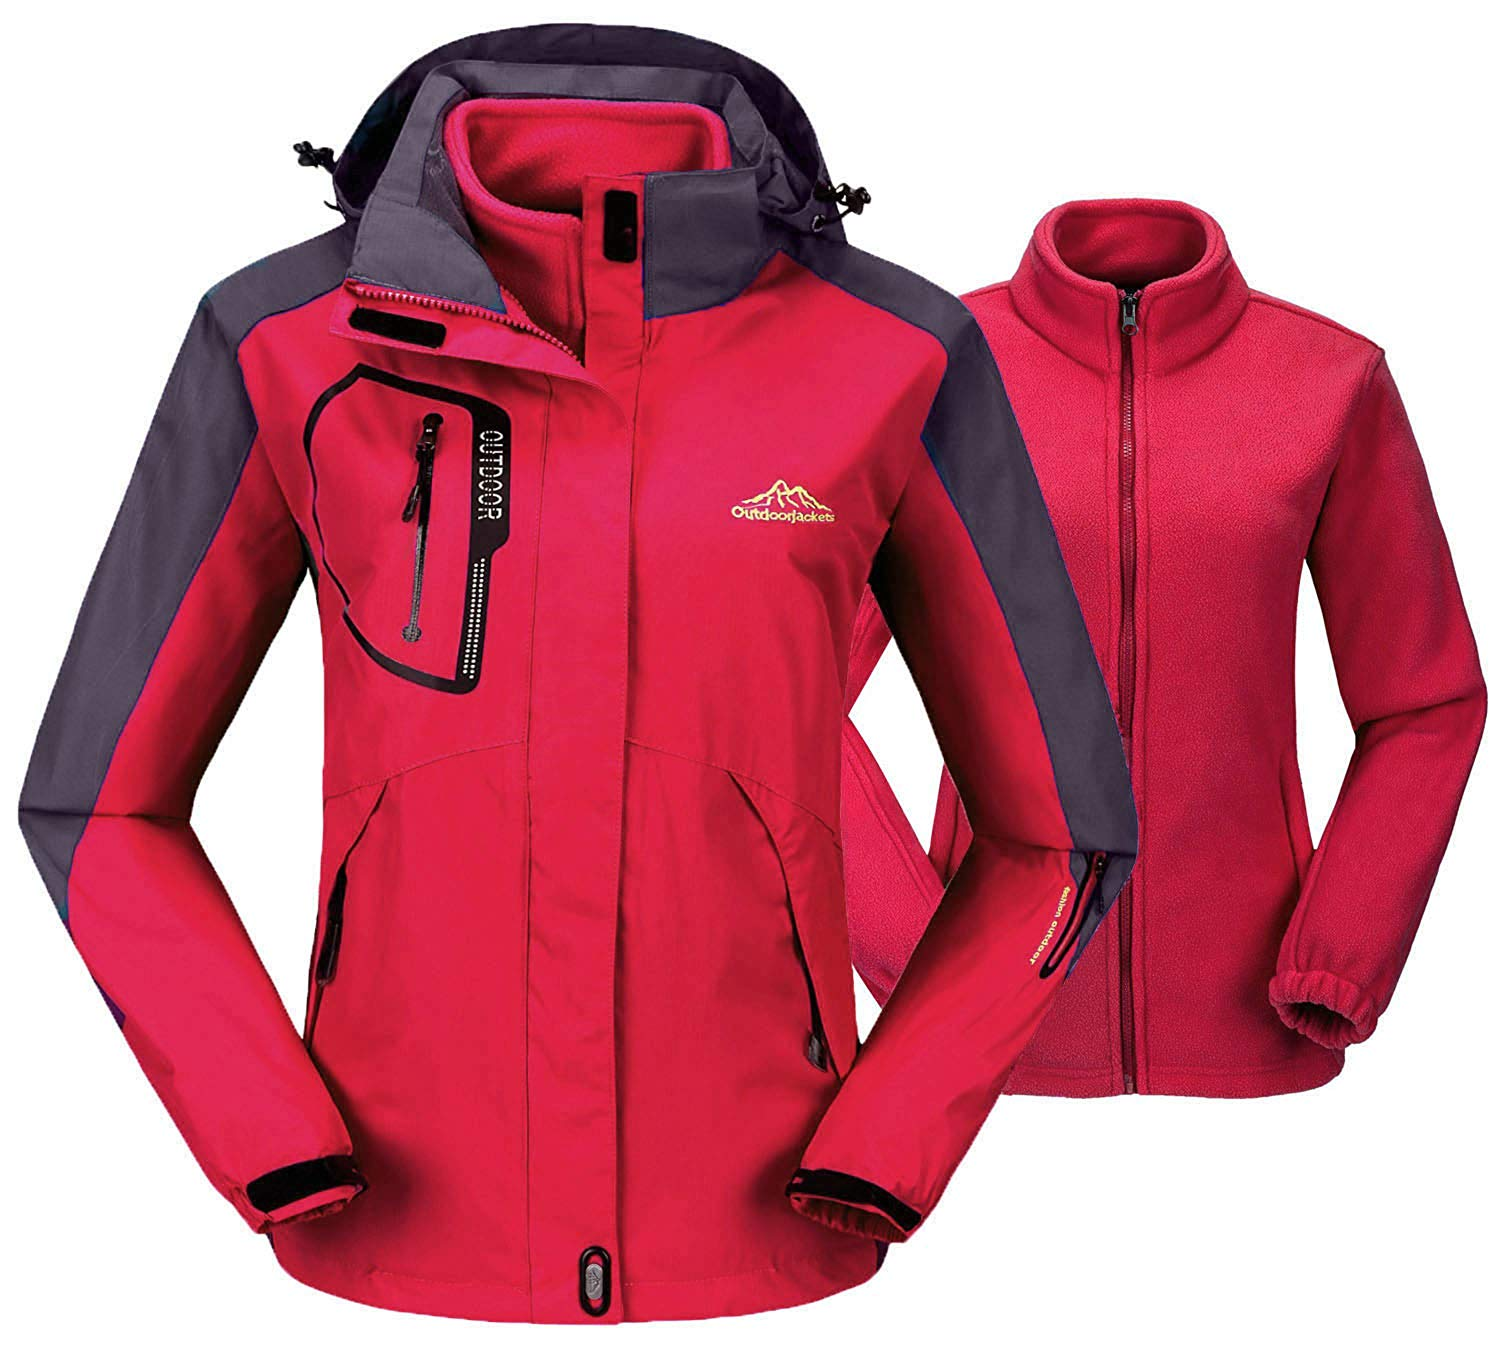 b3bee587a2cc5 Get Quotations · TBMPOY Women s 3-in-1 Winter Jacket Outdoor Waterproof  Softshell Rain Jacket